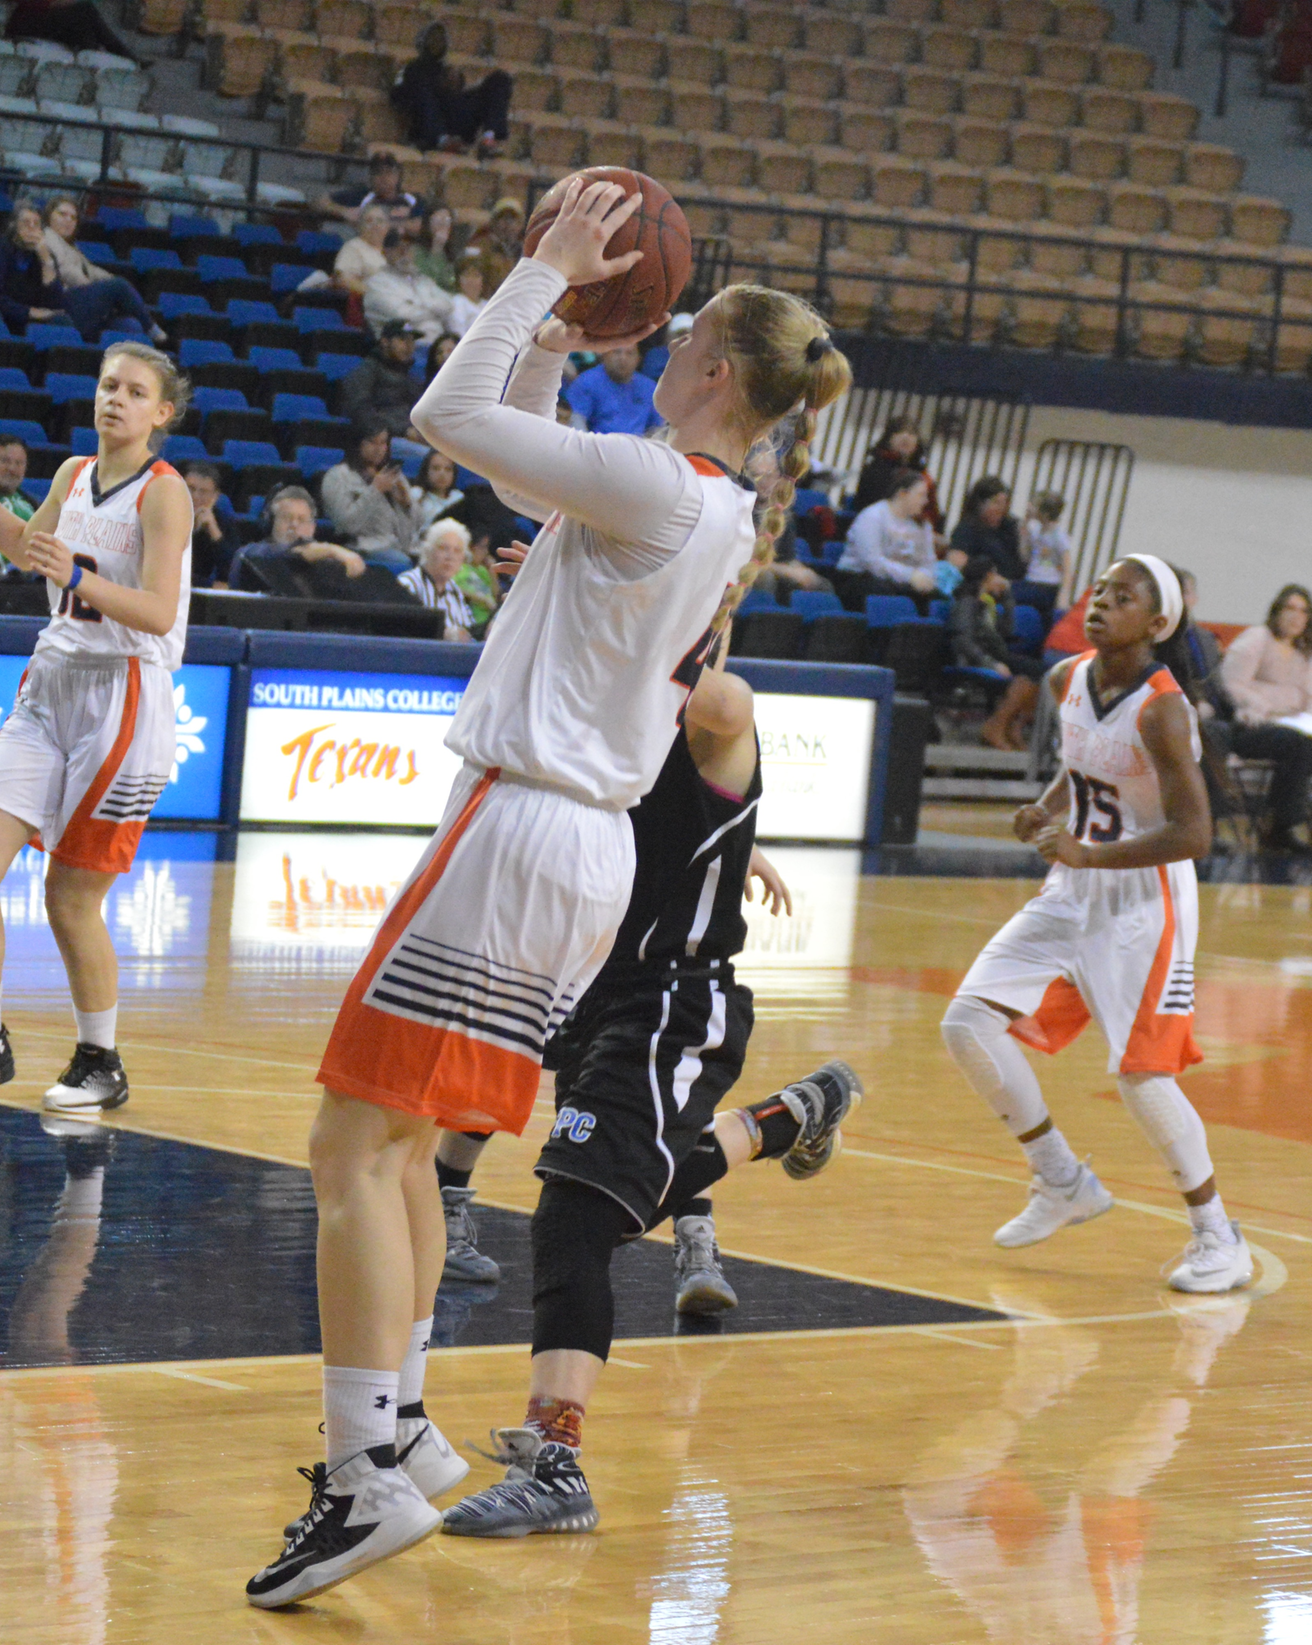 Inkina's 16 points leads the No. 7 Lady Texans to a 68-30 rout of Otero